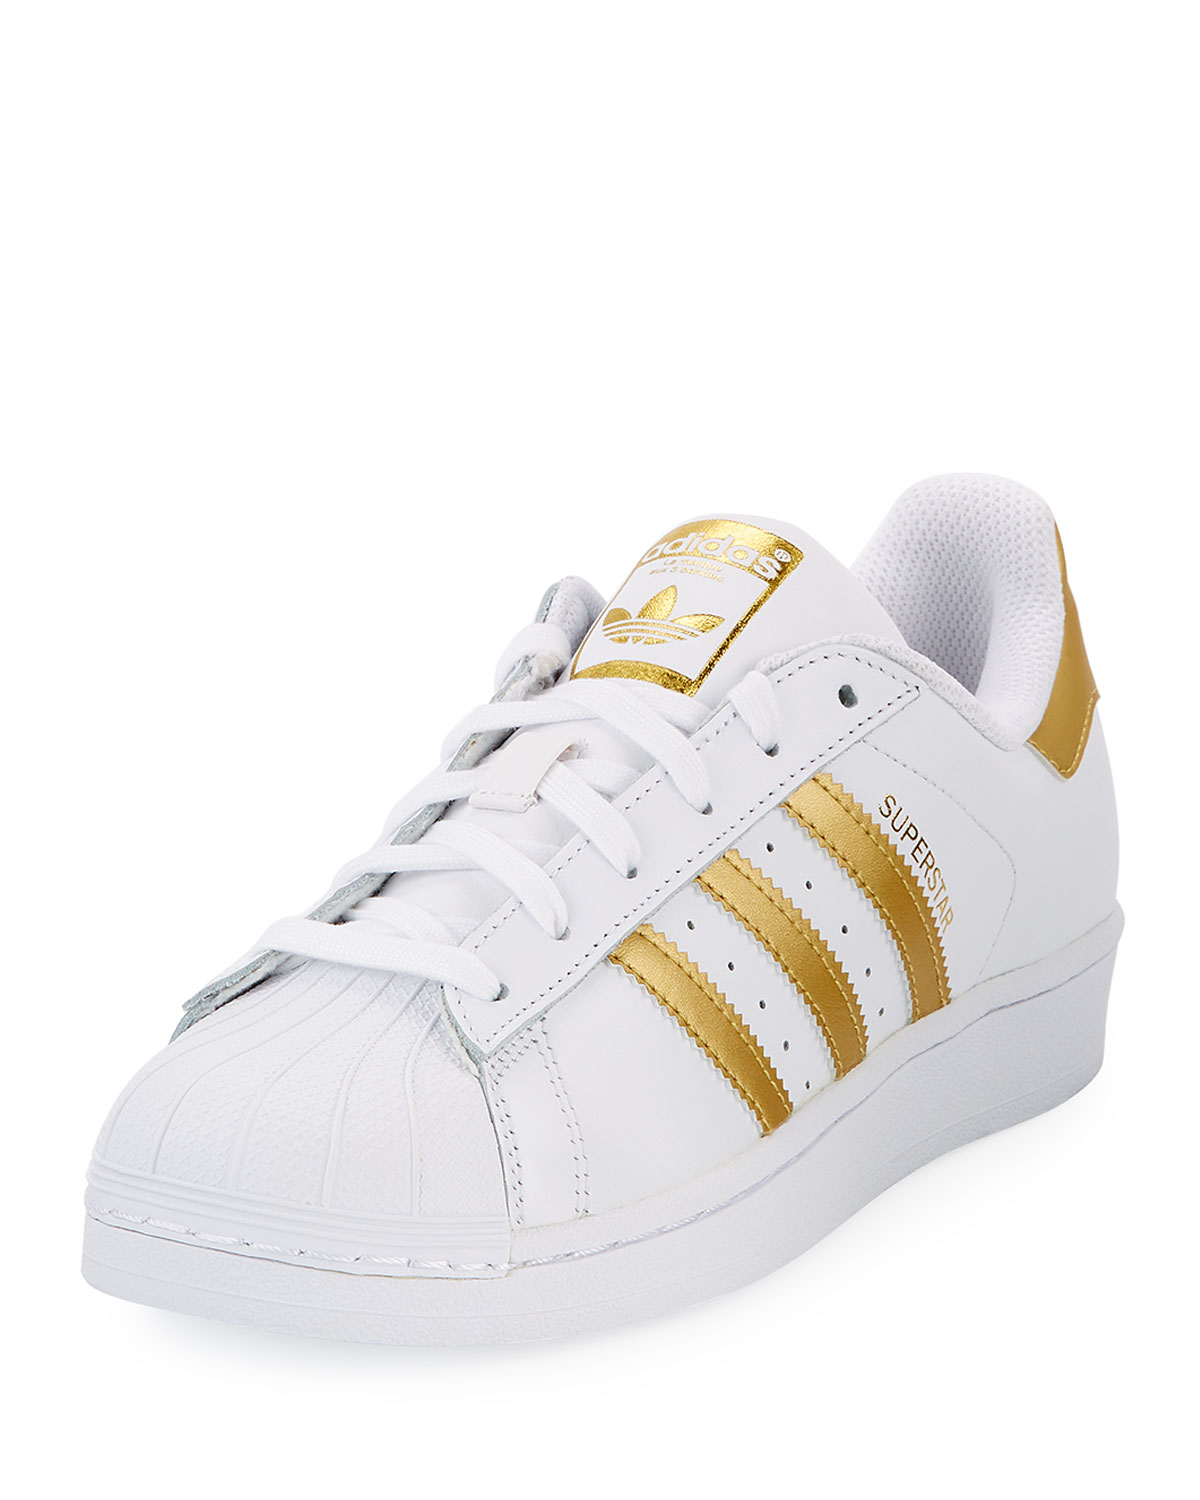 premium selection a452a a1211 AdidasSuperstar Original Fashion Sneaker, White Gold